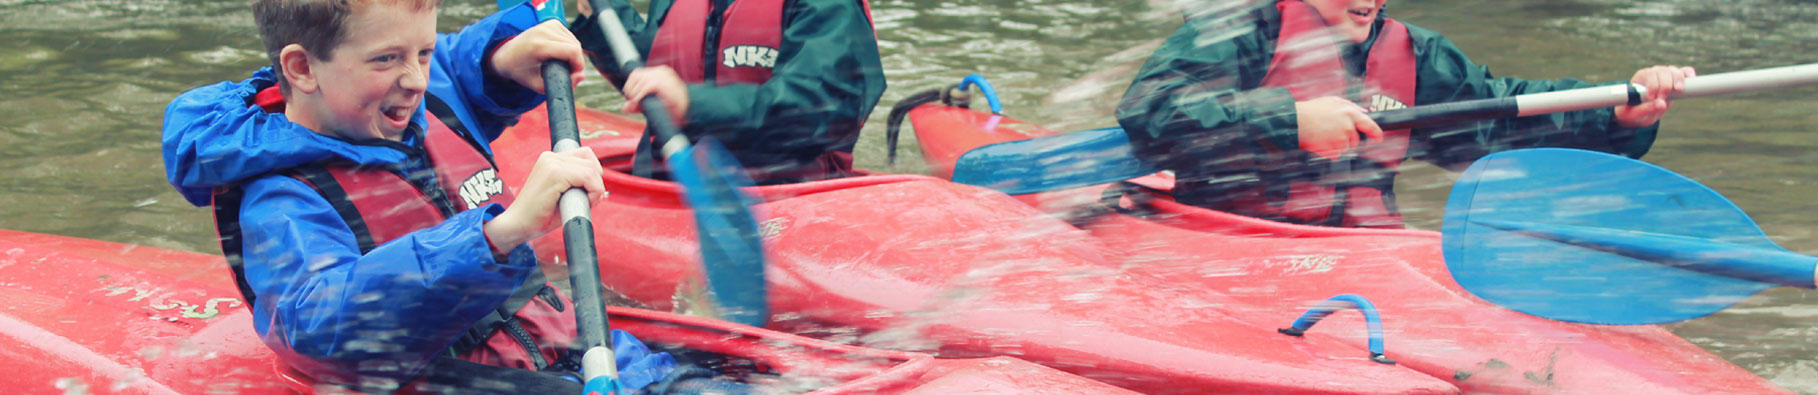 Kayaking and canoeing courses at Shoreline in Bude, Cornwall